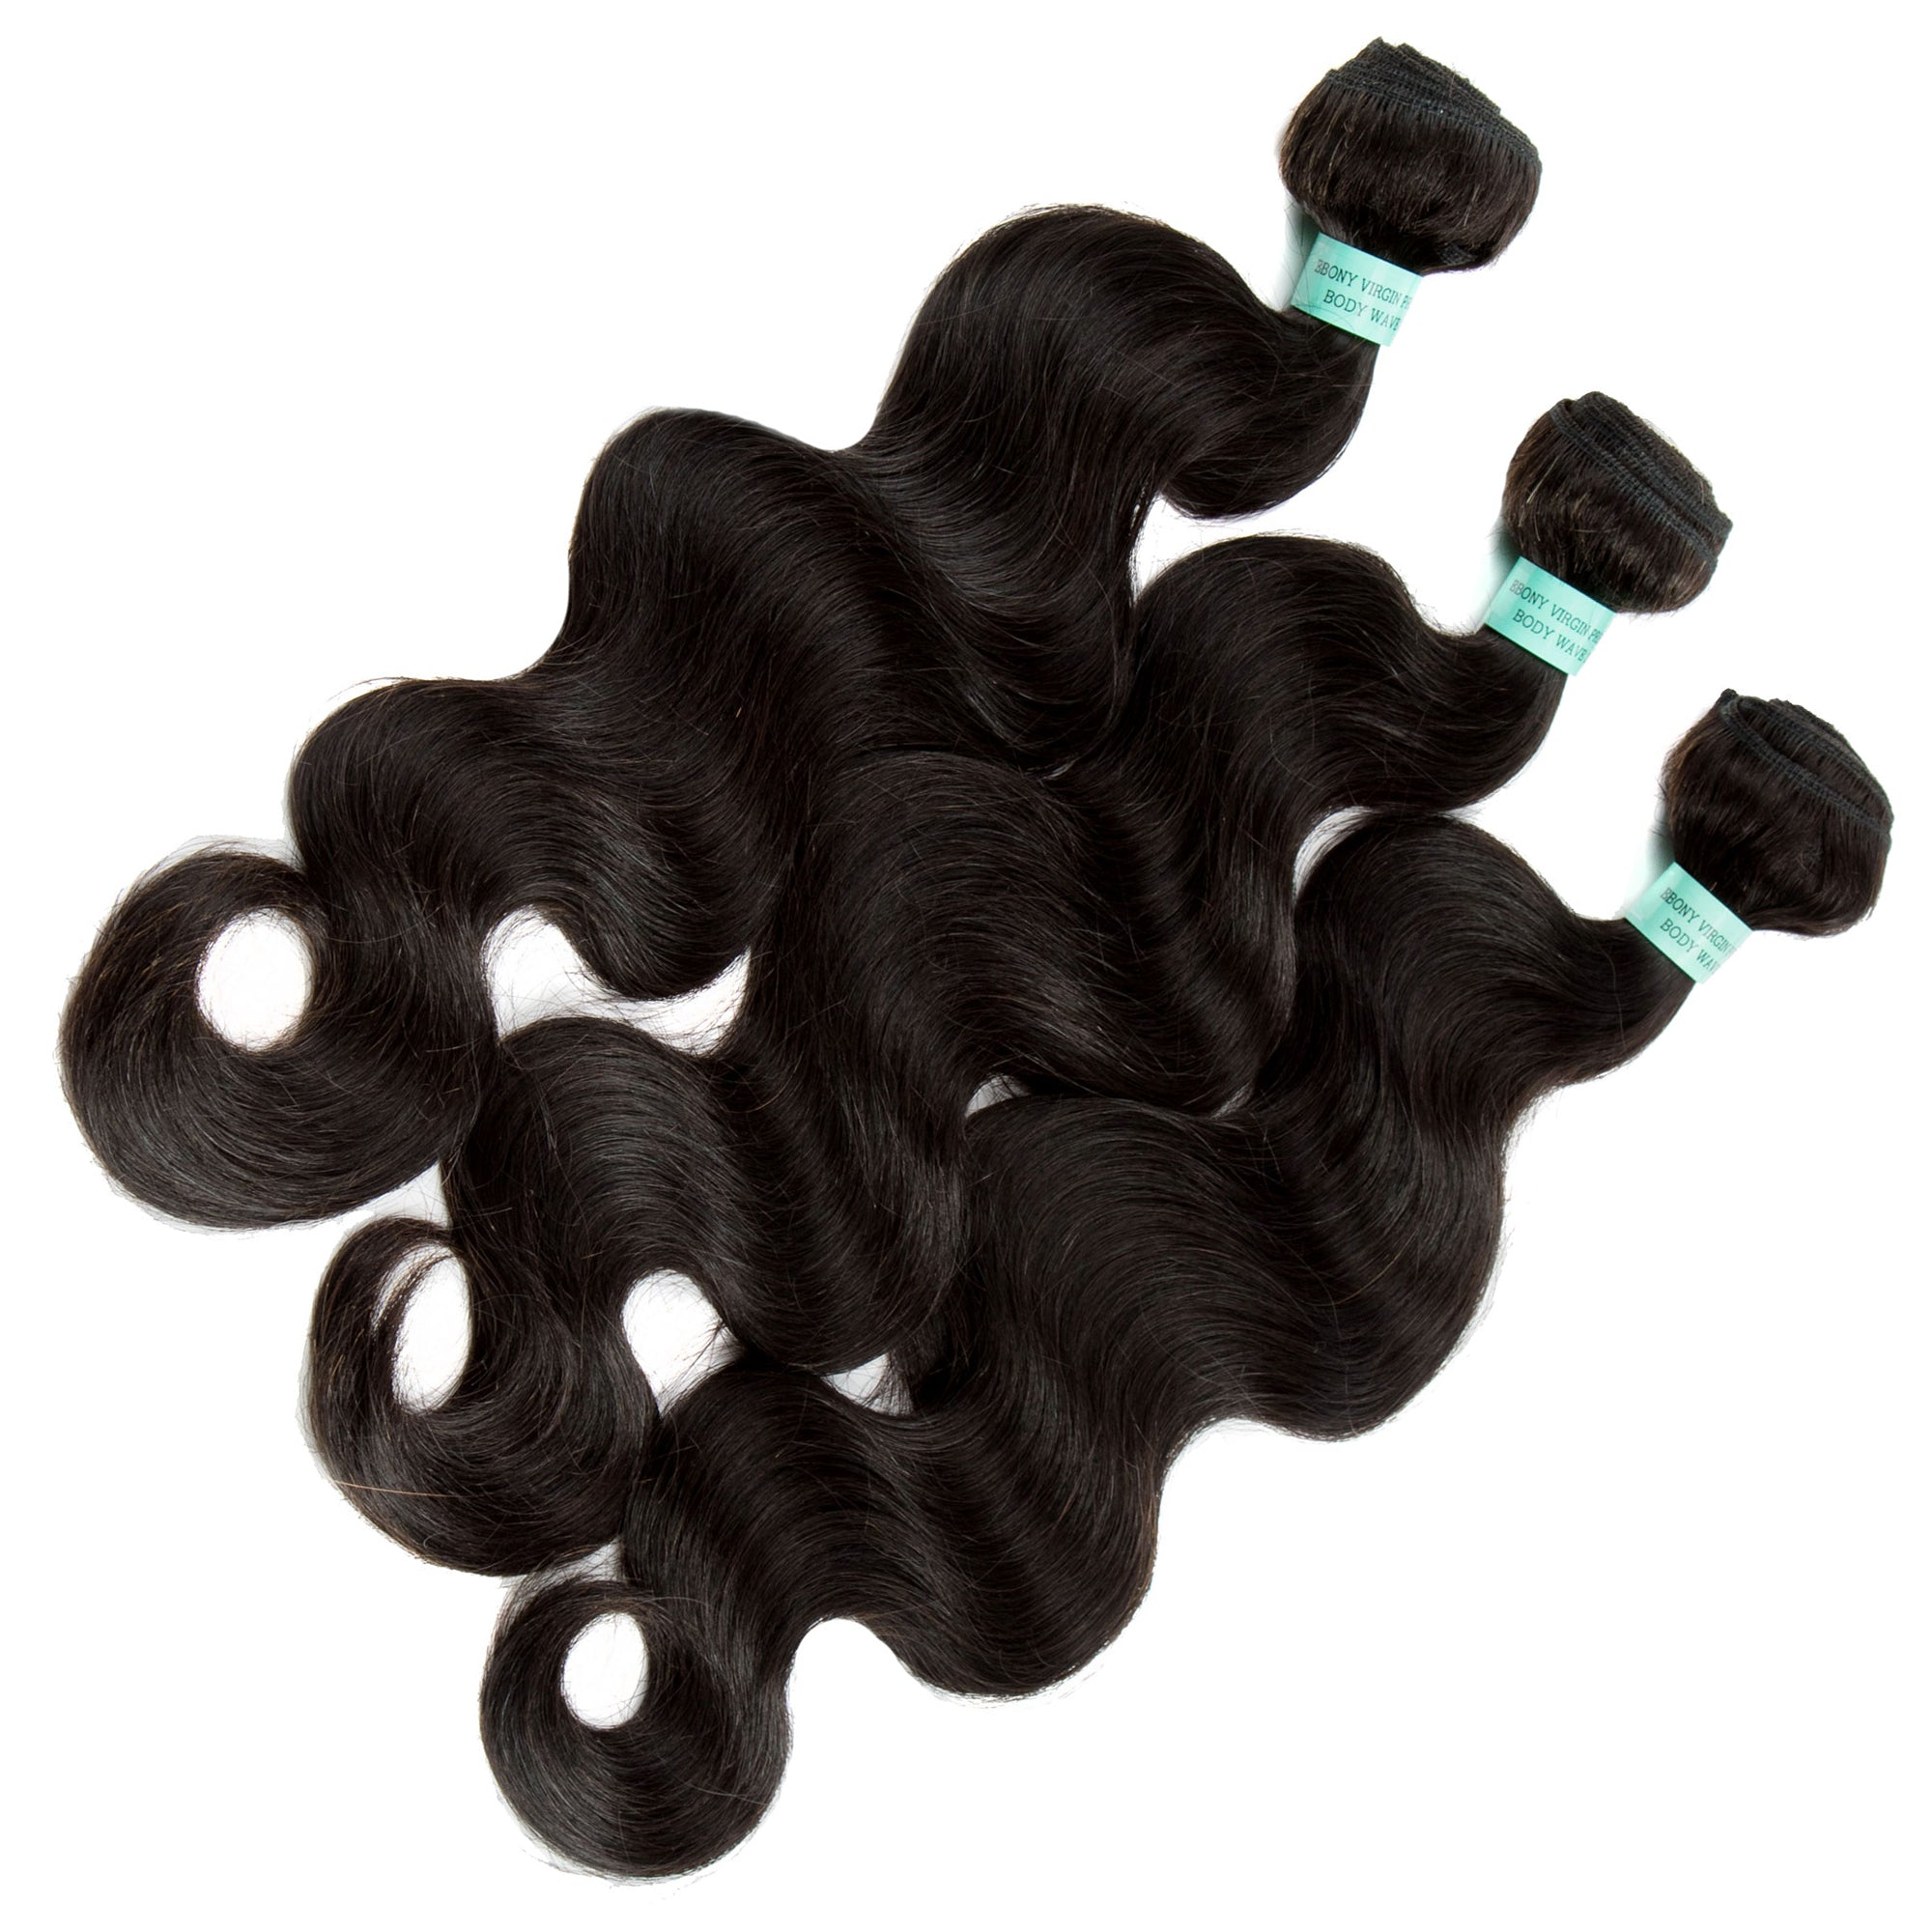 Premium Body Wave Hair 3 Bundles